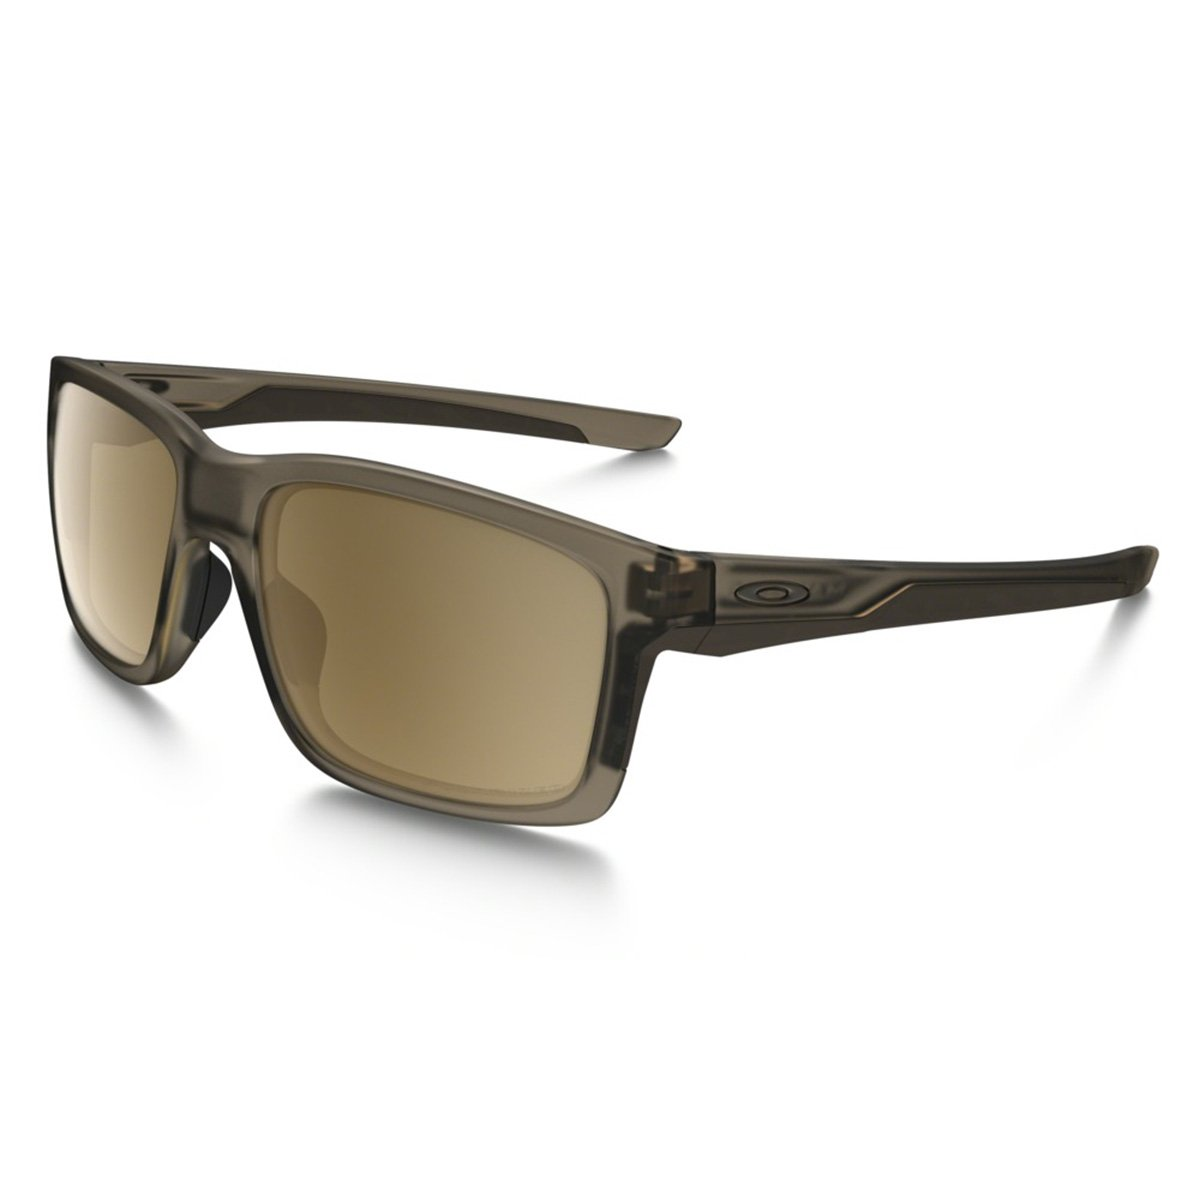 Oakley Mainlink Polarized Sunglasses, Matte Sepia/Tungsten Iridium, One Size